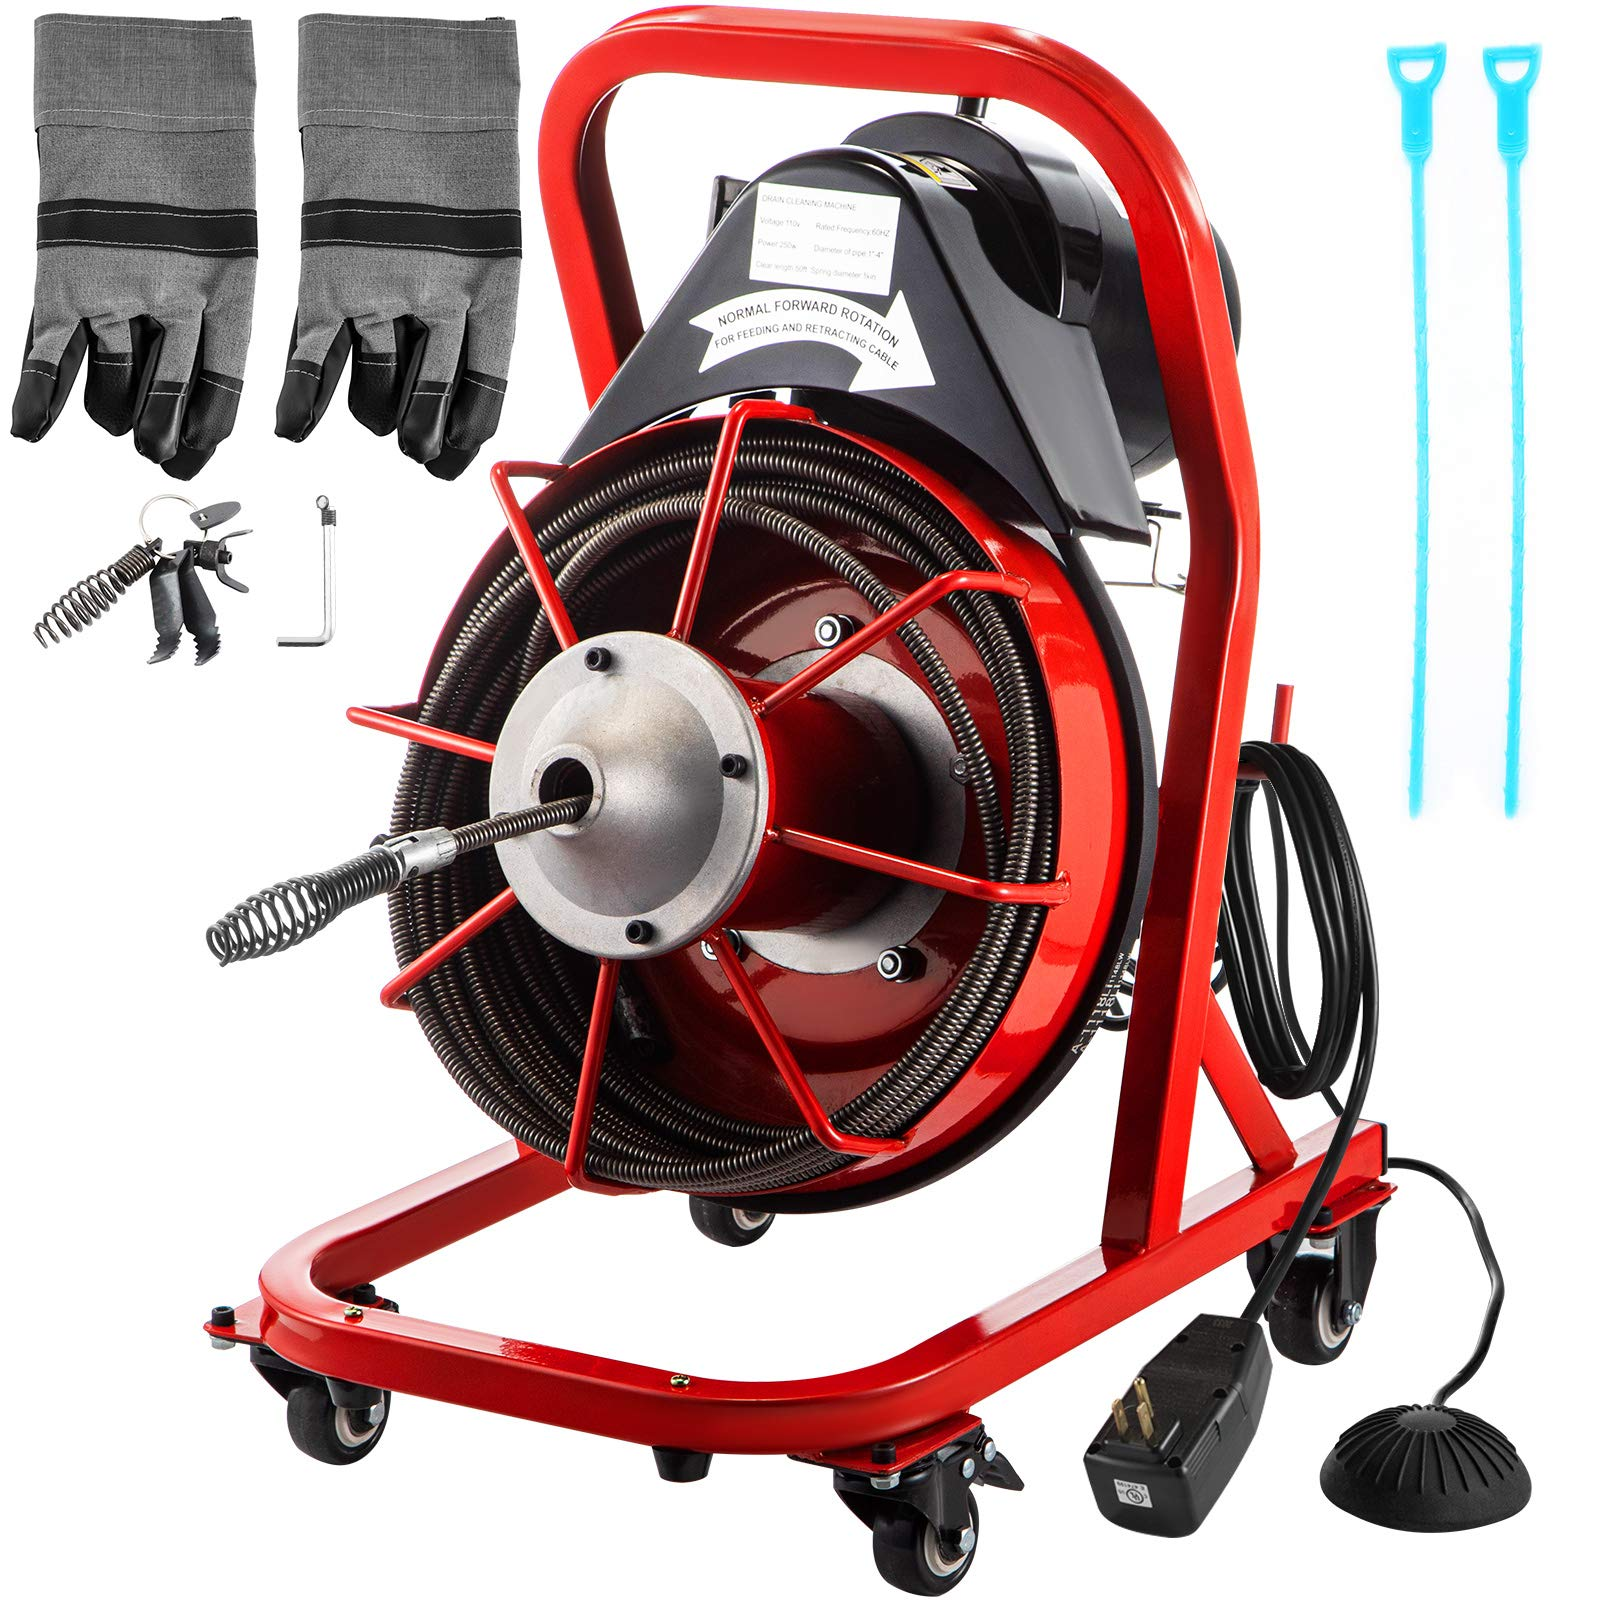 VEVOR Drain Cleaner Machine 50FT x 1/2In. Electric Drain Auger 370W Sewer Snake Machine Auto-feed Control, Fit 1-2''(51mm) to 4''(102mm) Pipes, w/Cutters & Foot Switch, for Drain Cleaners, Plumbers